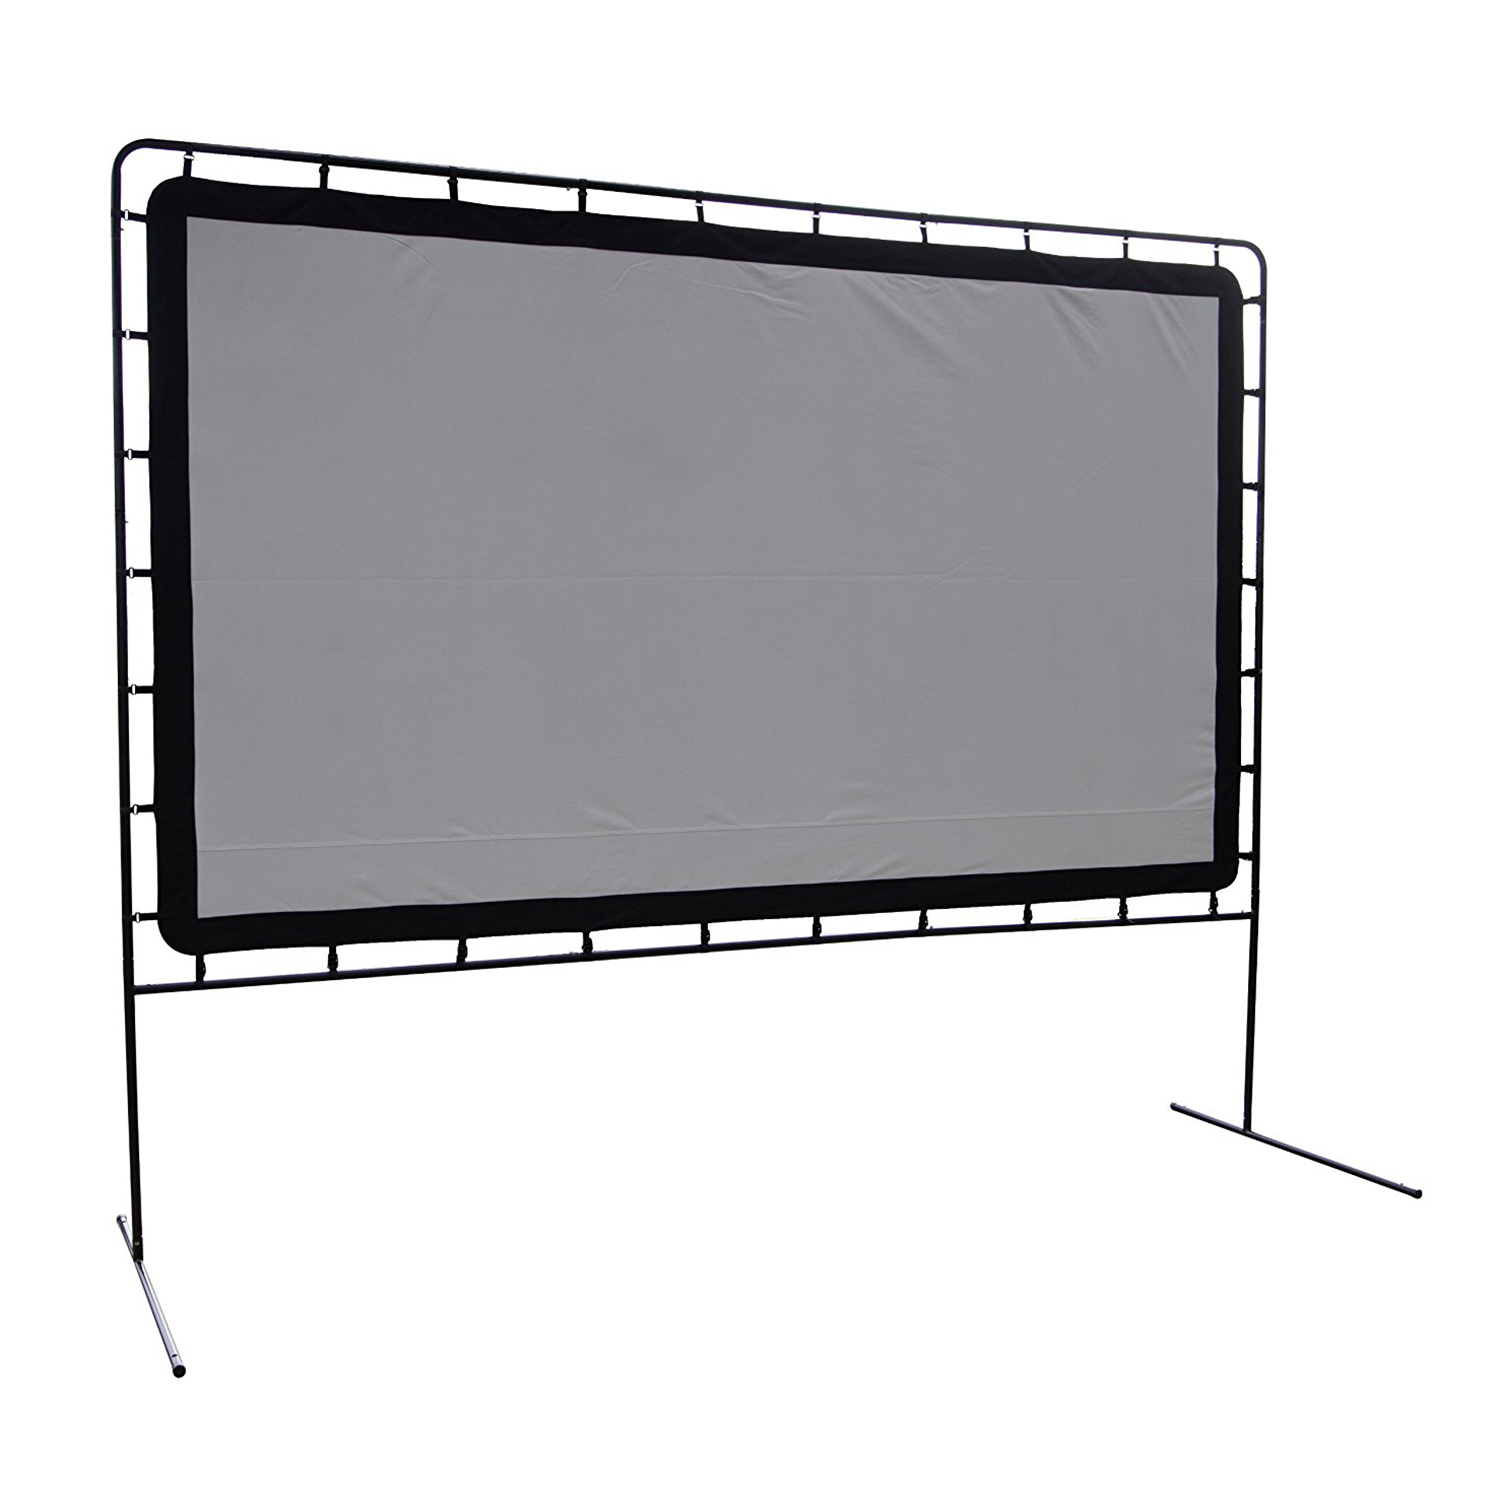 "Camp Chef 144"" Giant Indoor or Outdoor Nylon Backyard Movie Projector Screen"